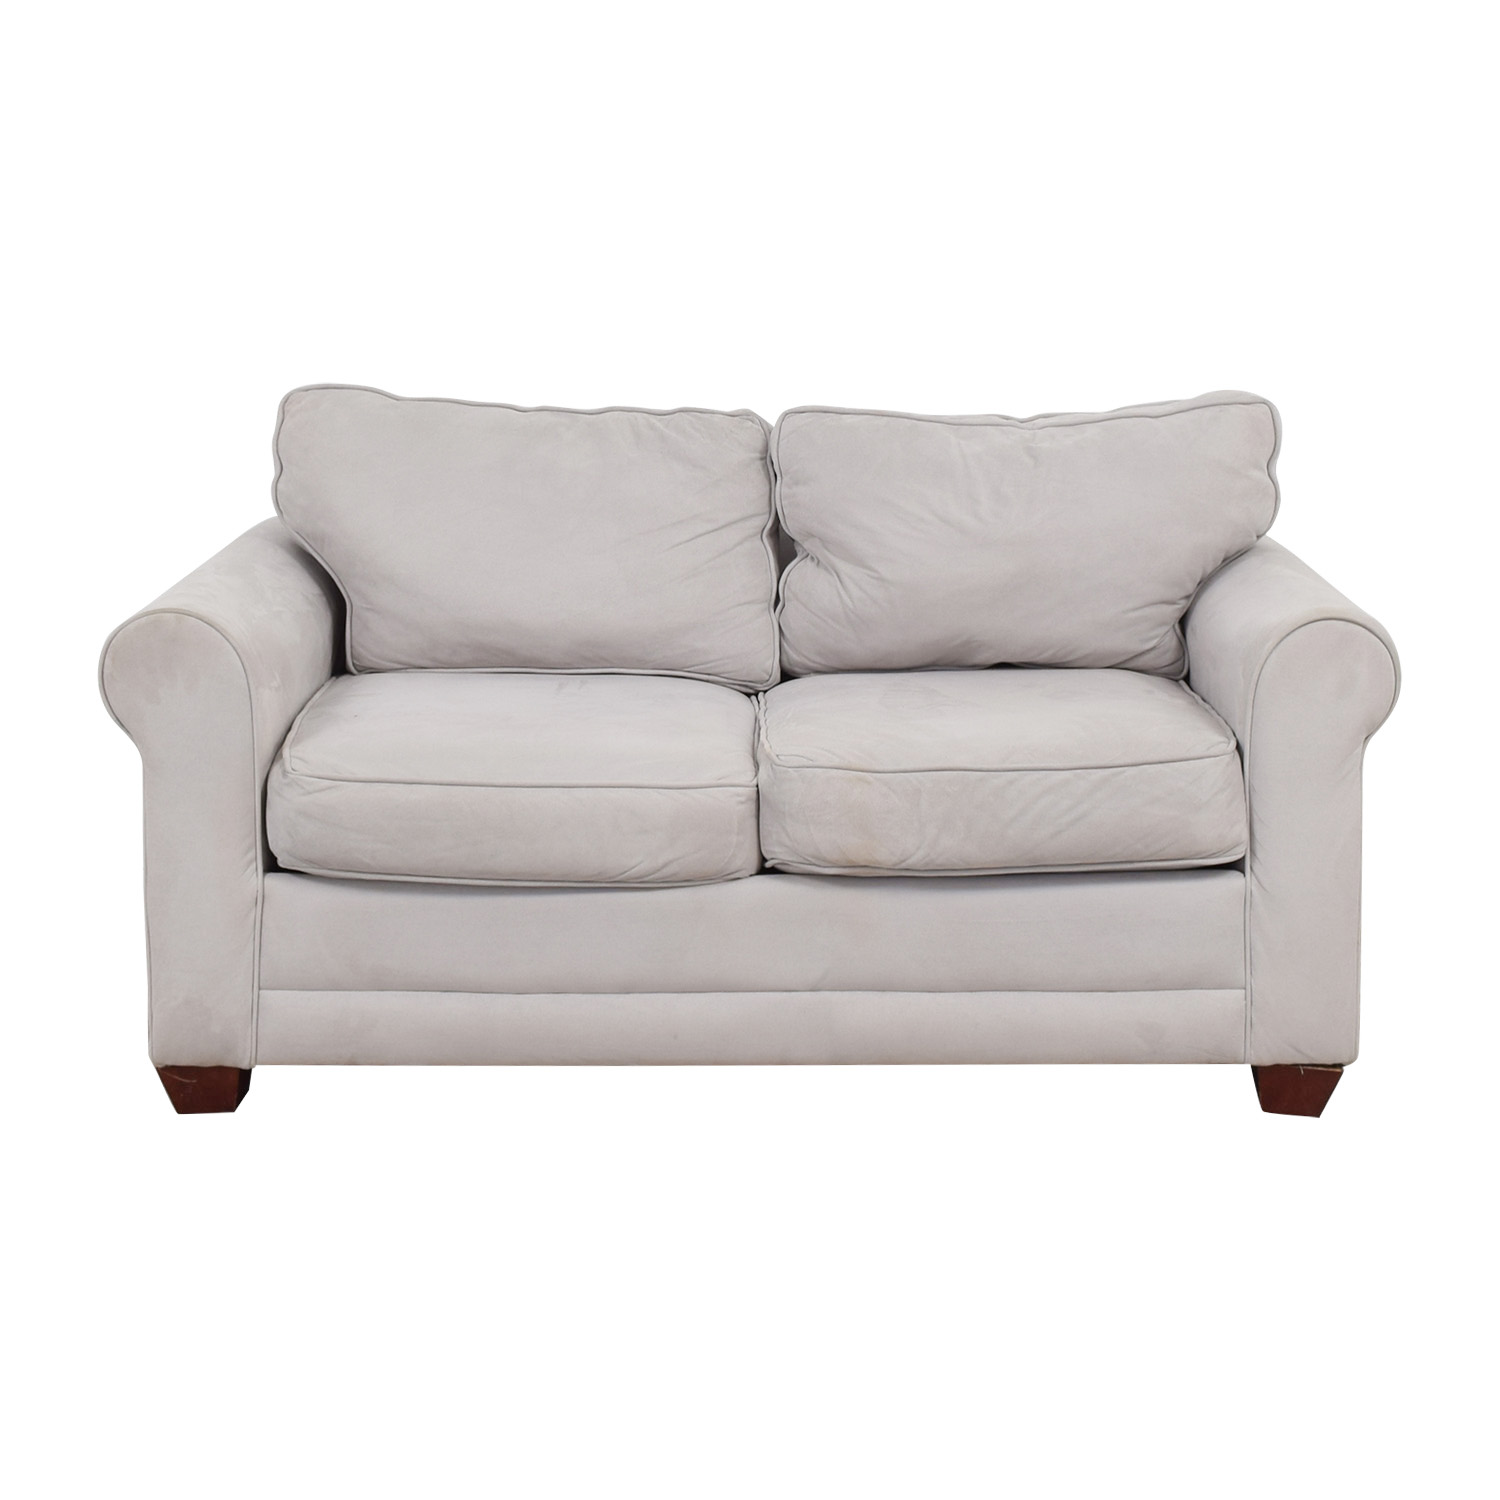 Grey Microfiber Curved Arm Loveseat on sale